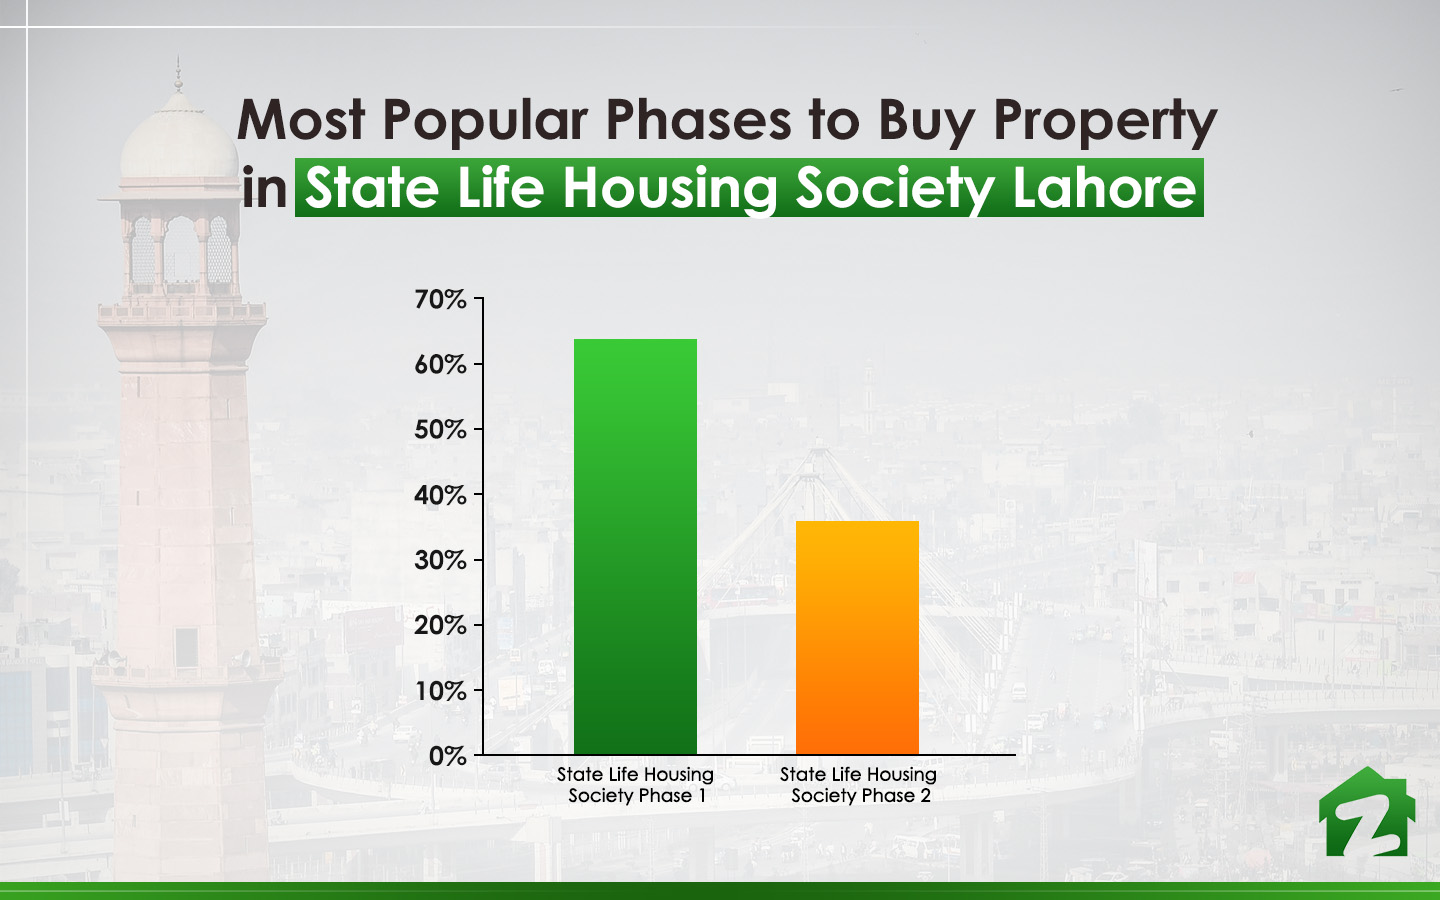 popular phases in State Life Housing Society